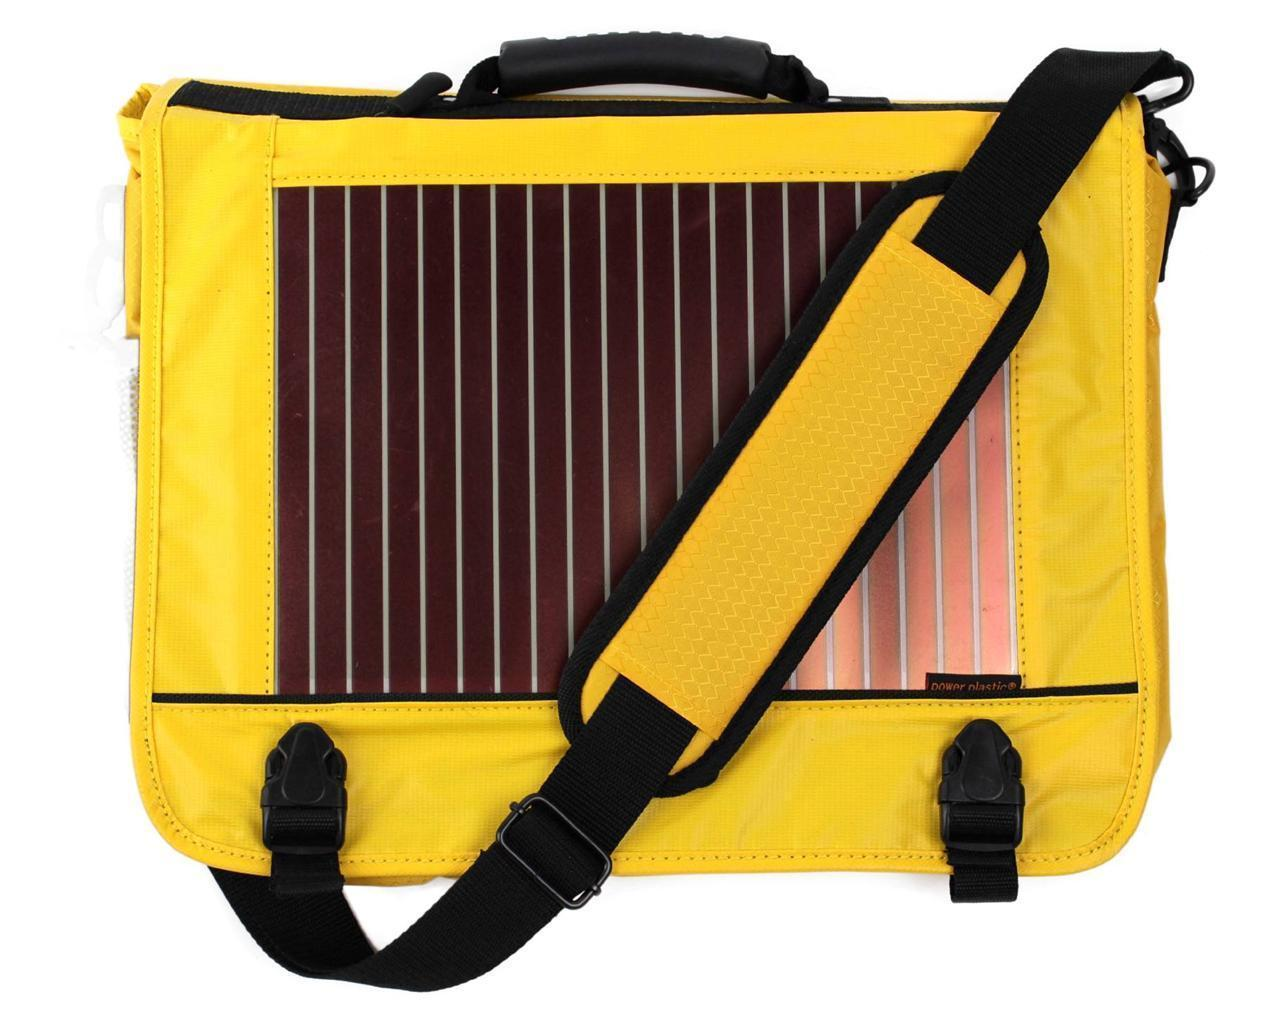 NEW ECO TRAVELER SOLAR PANEL LAPTOP BOOKS MESSENGER SHOULDER BAG YELLOW ET0120Y